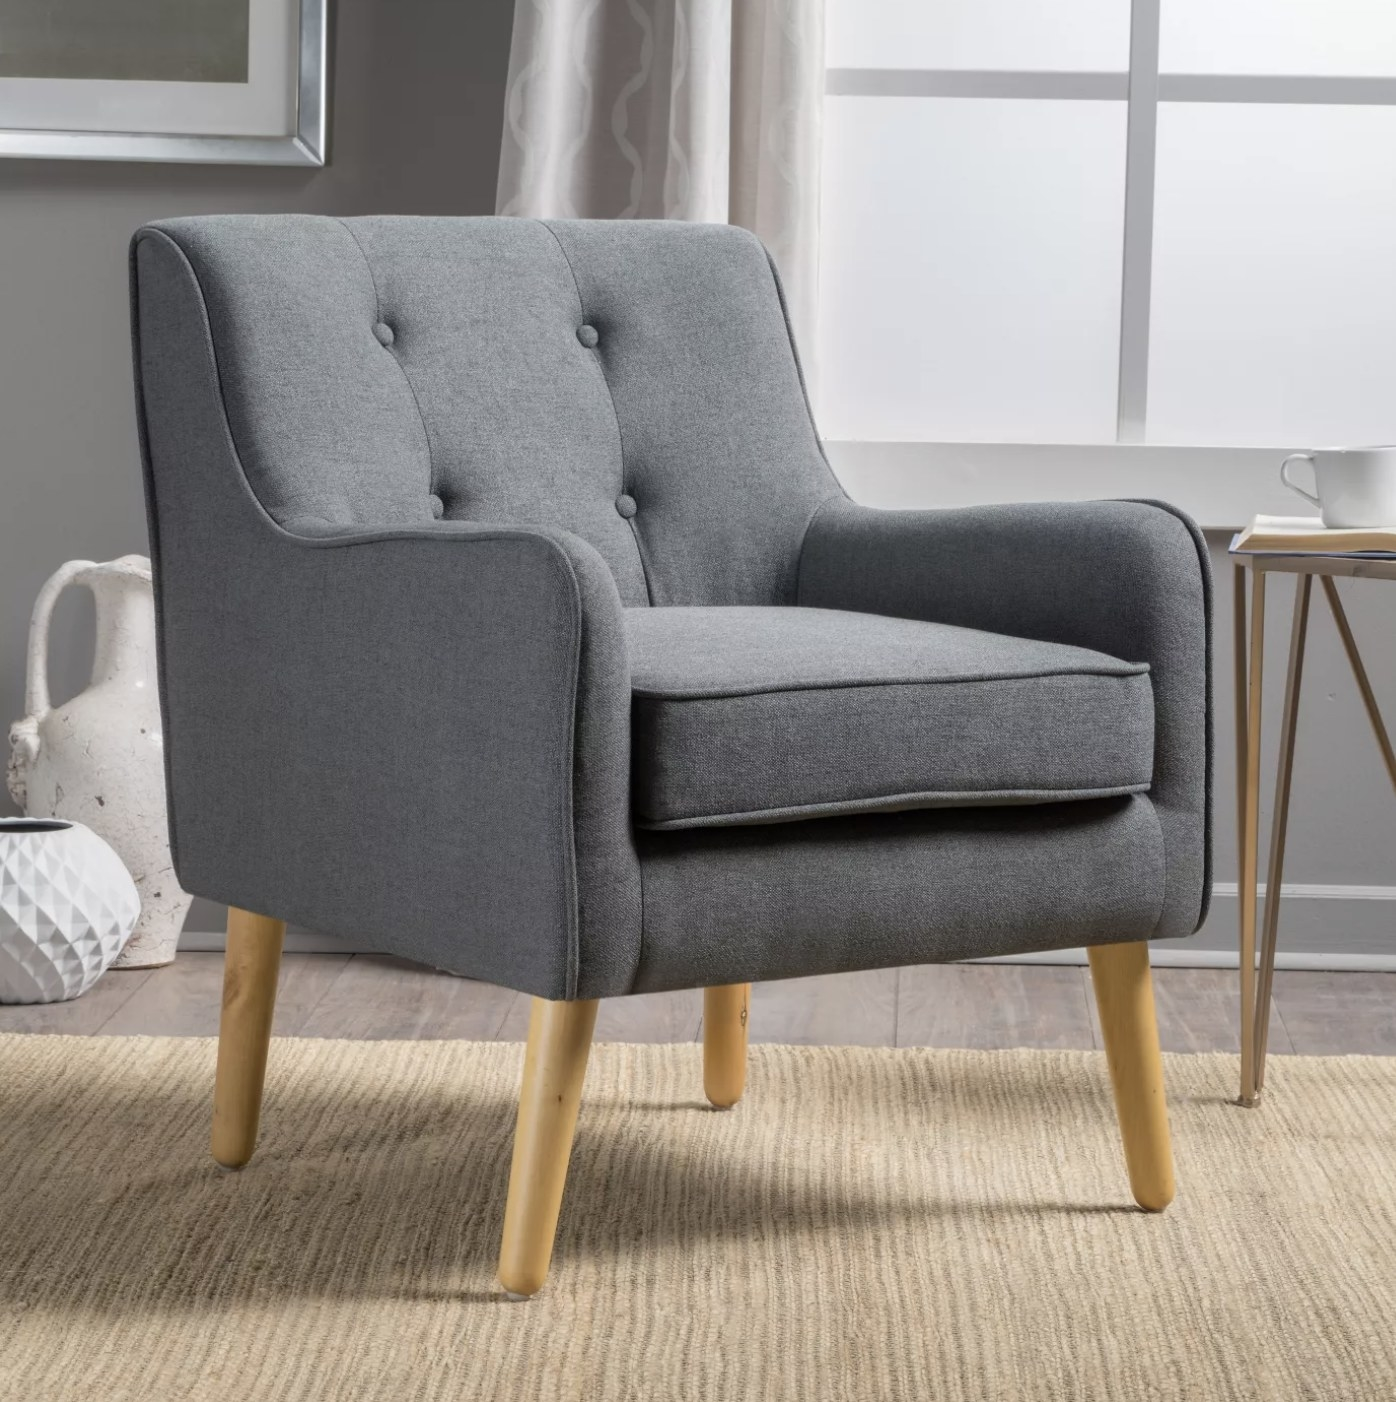 The grey chair